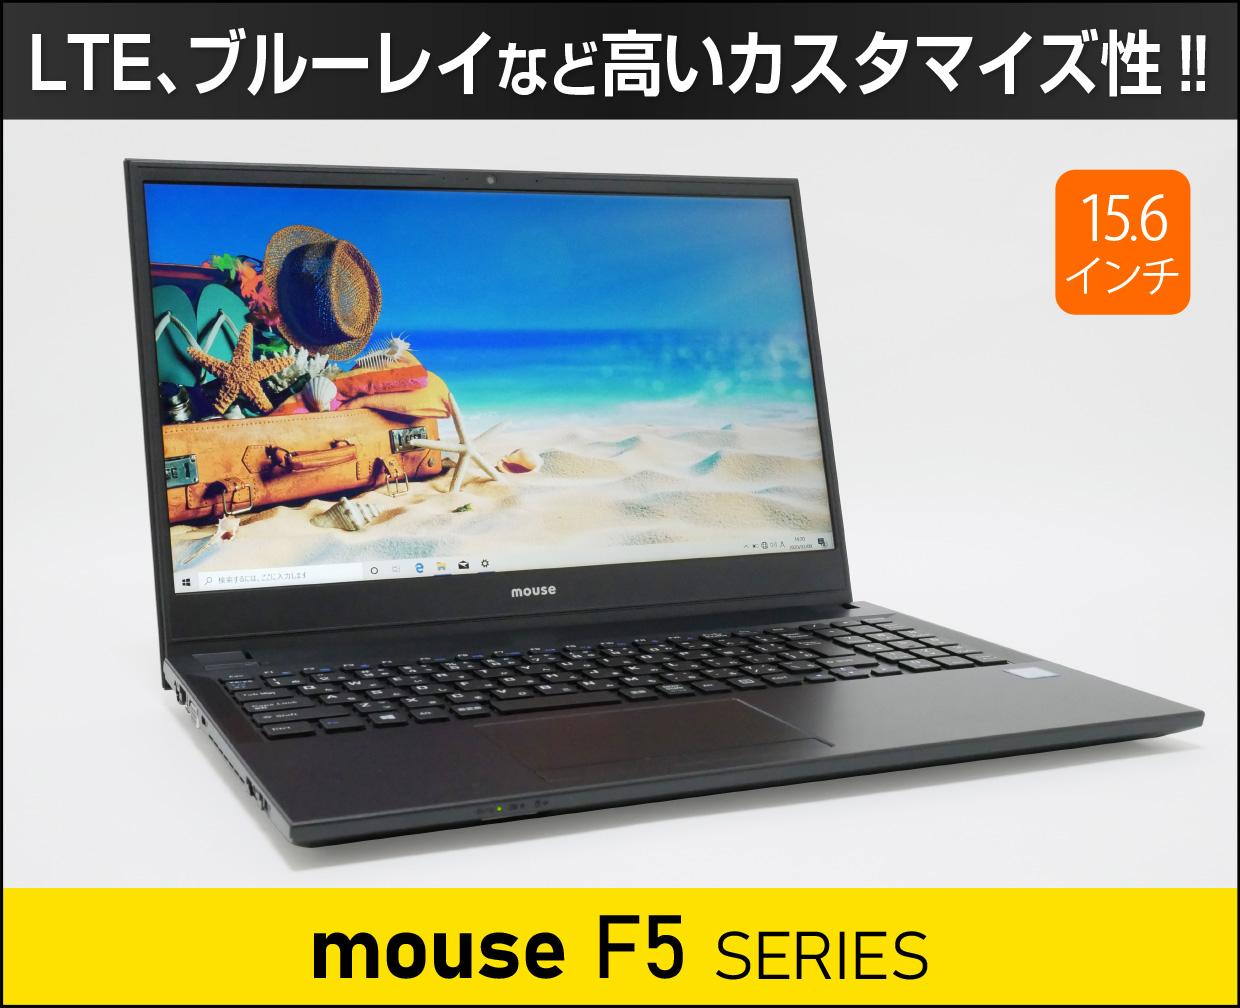 Main image of mouse computer mouse F5 series